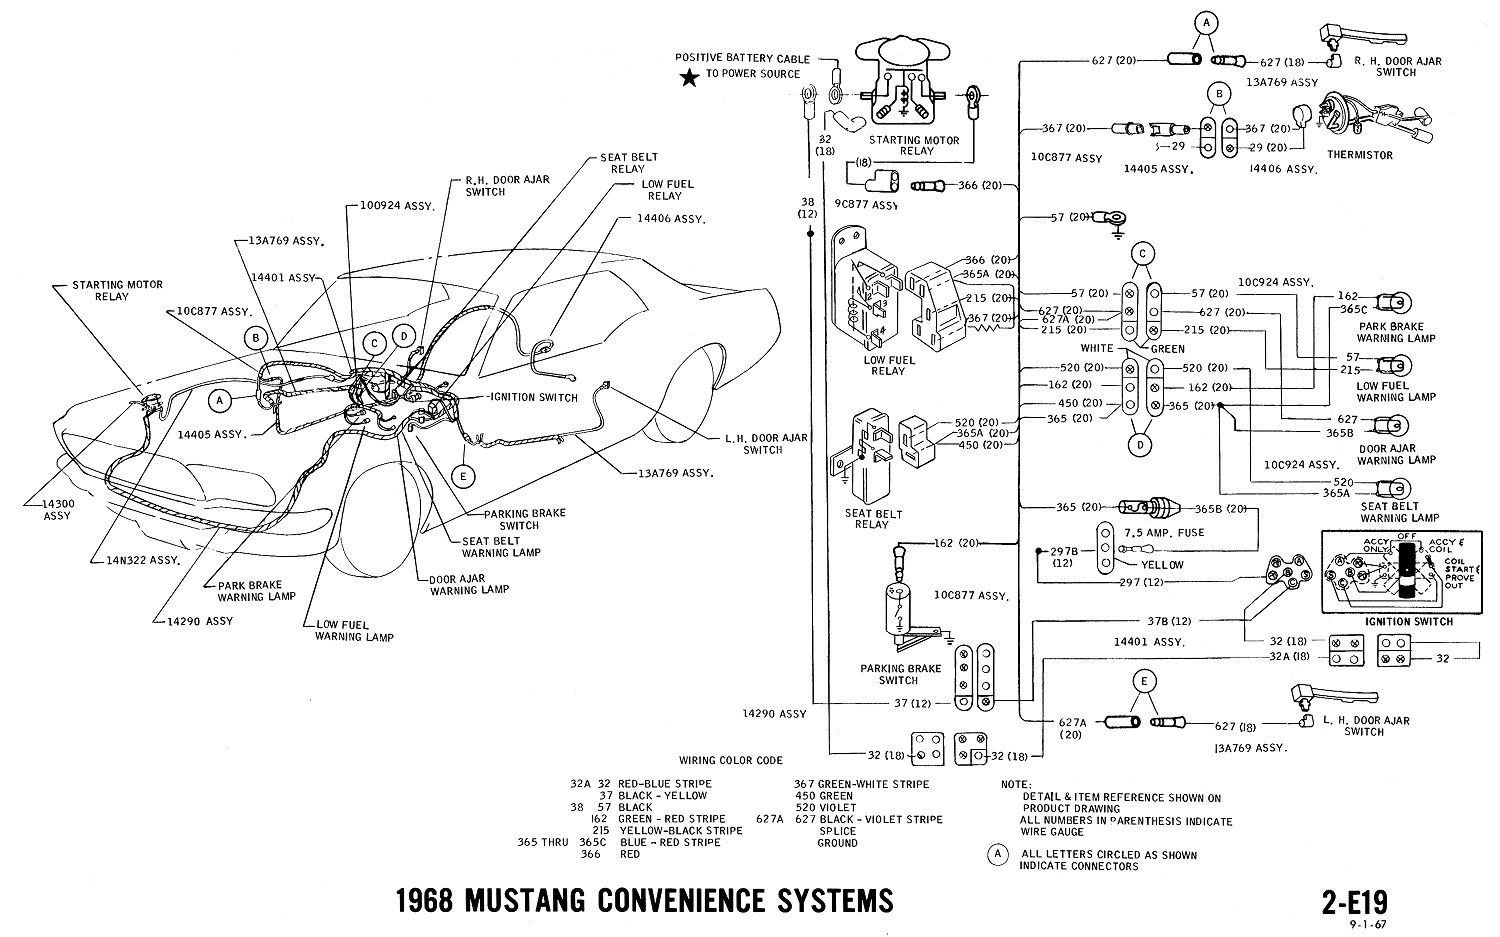 1968 mustang wiring diagram convenience systems 65 mustang dash wiring diagram 1965 ford mustang wiring diagram 1965 ford mustang wiring diagrams at crackthecode.co